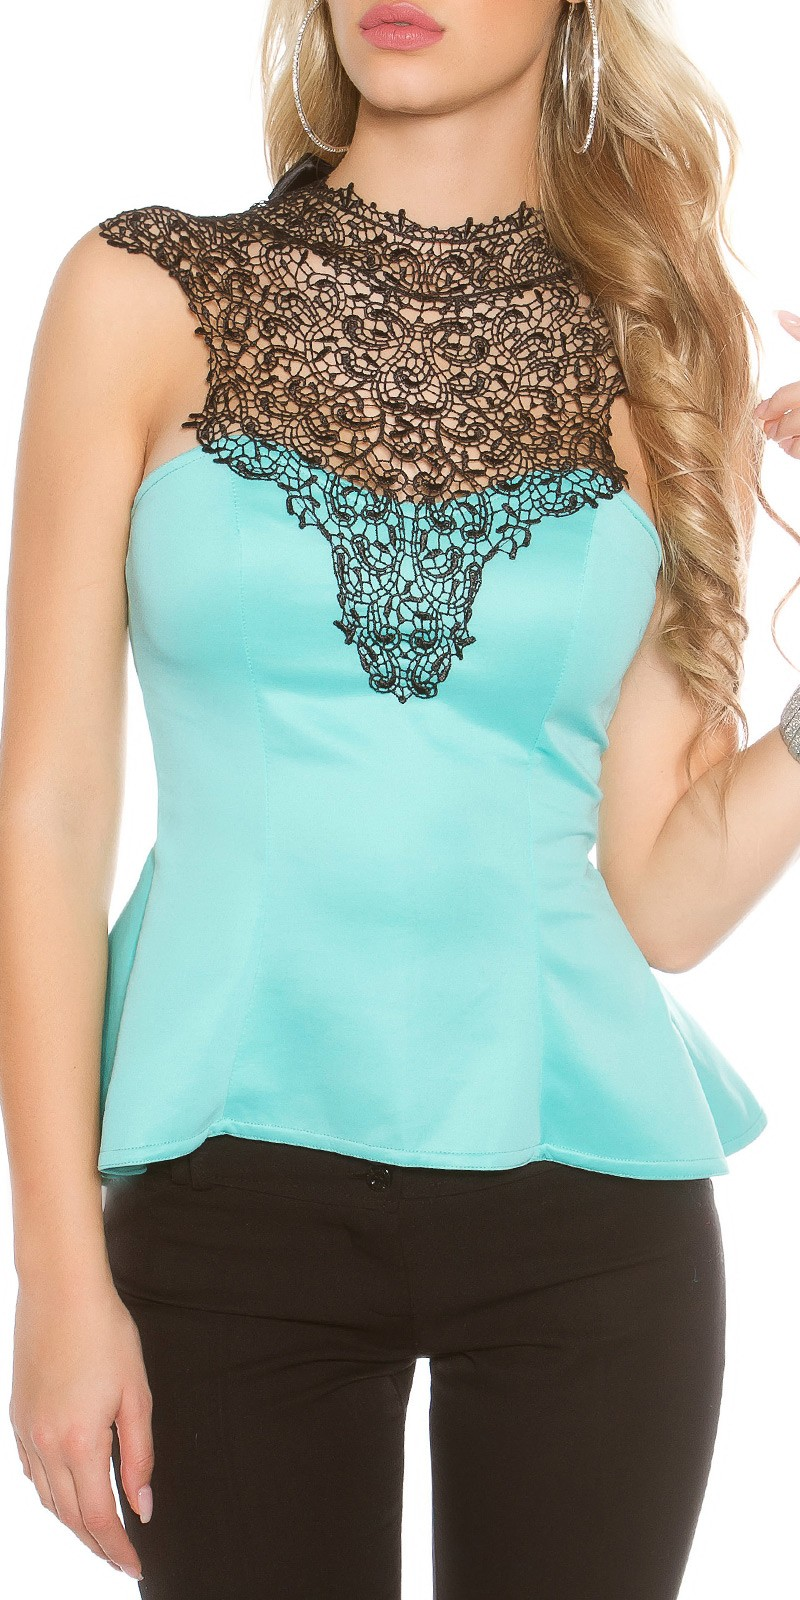 Elegant top with peplum and lace